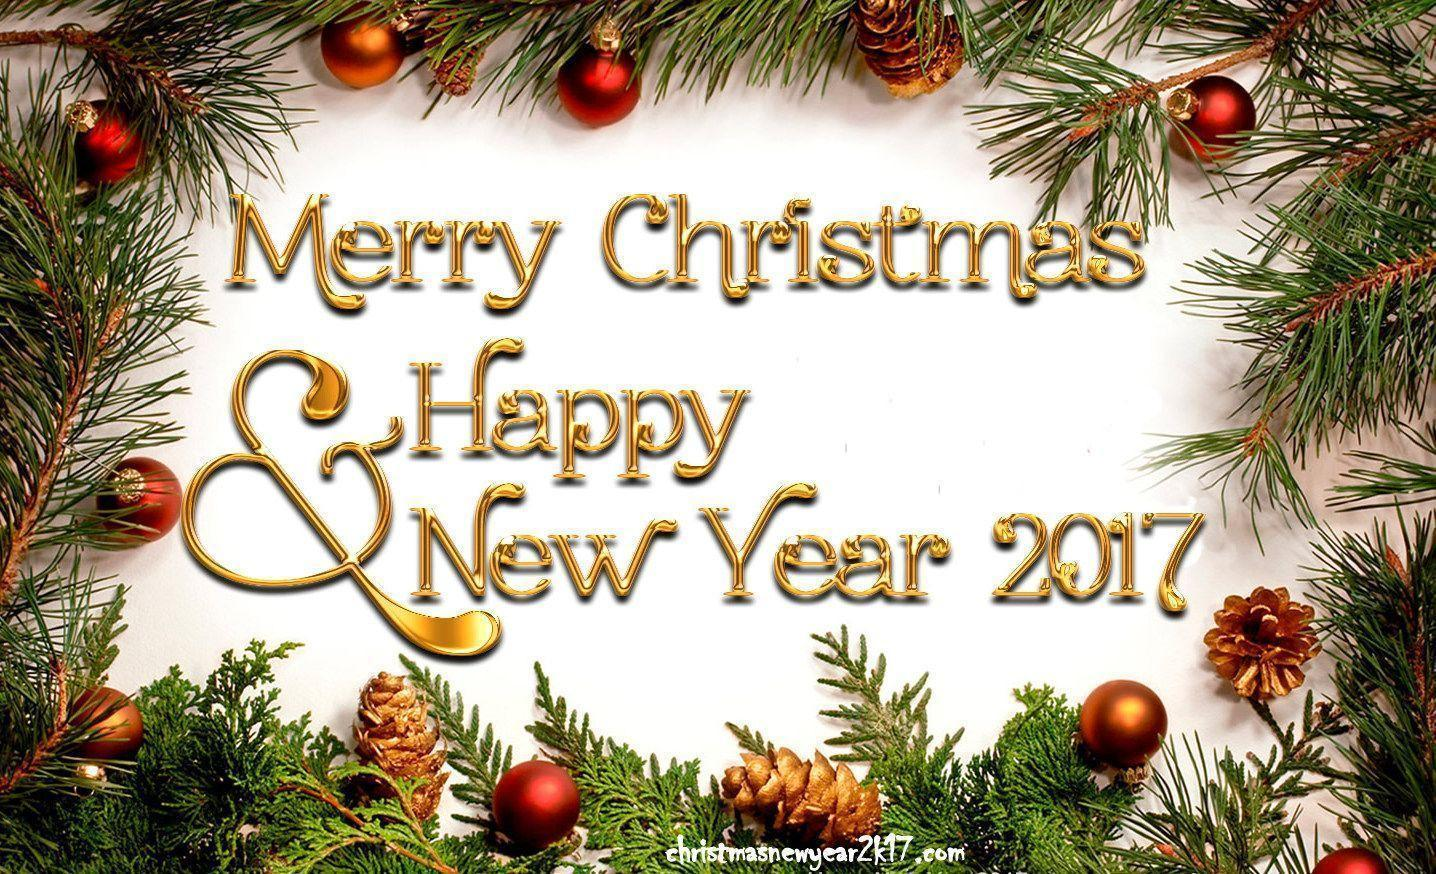 50 Beautiful Merry Christmas And Happy New Year Pictures: Merry Christmas Wallpapers 2017